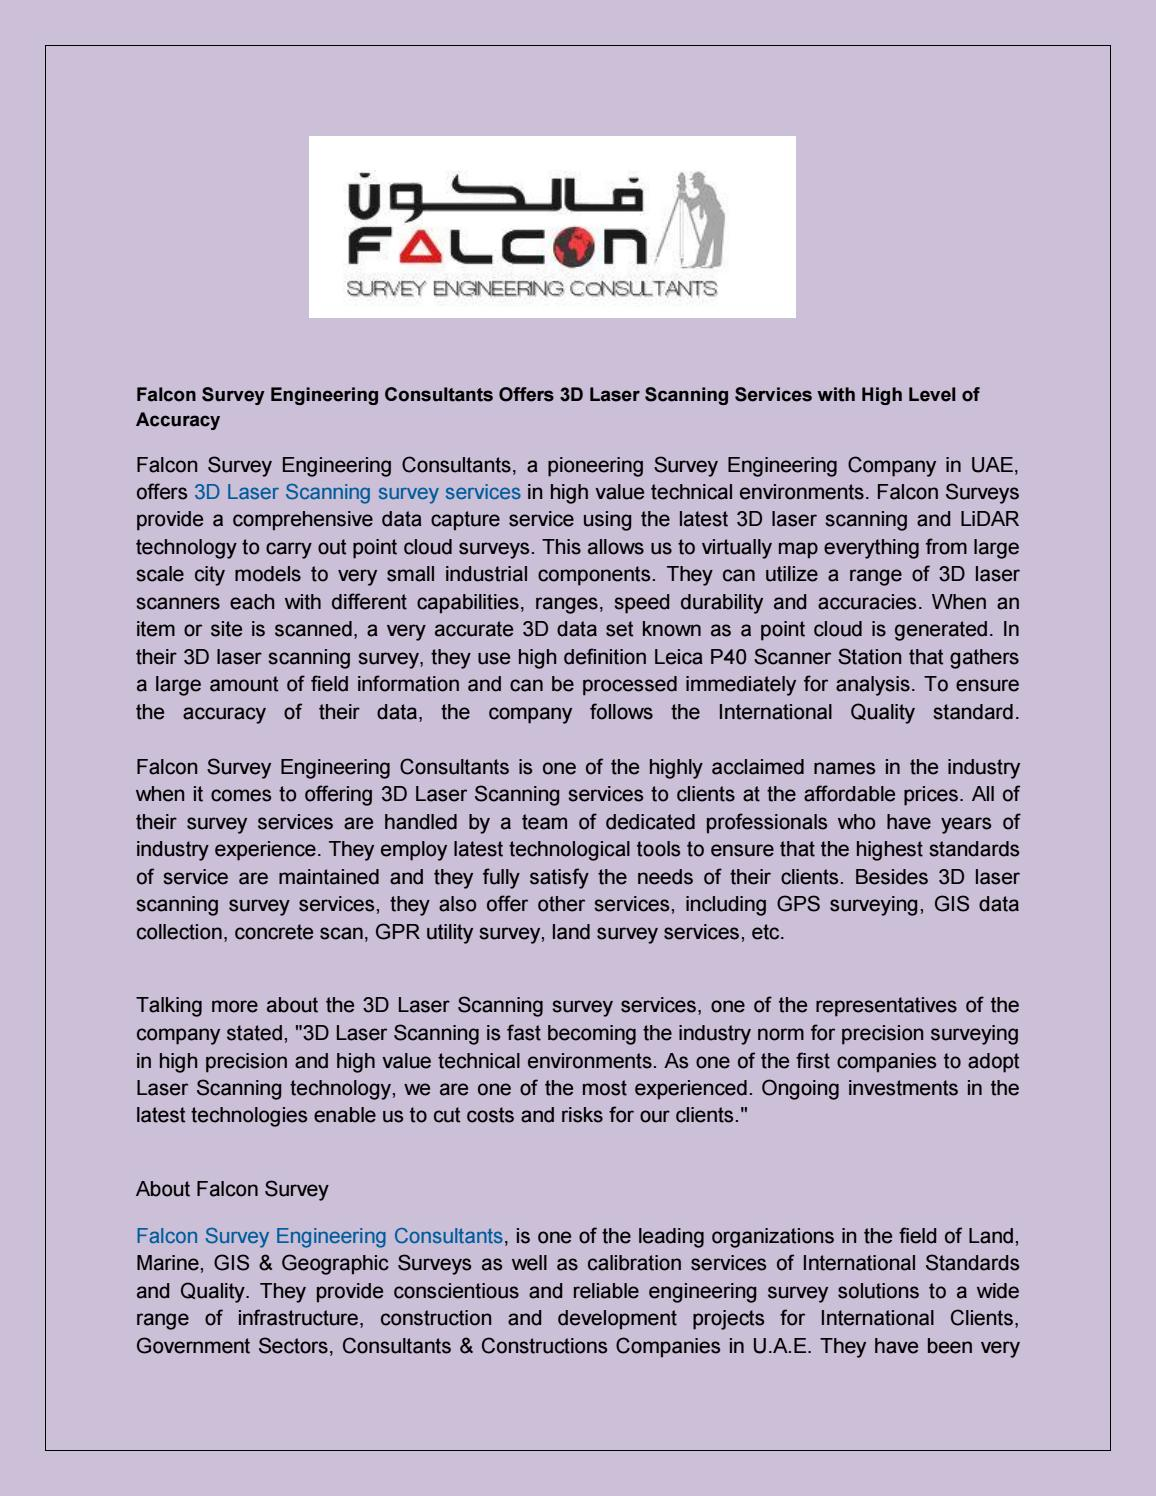 3d laser scanning survey services in uae by falconsurvey - issuu